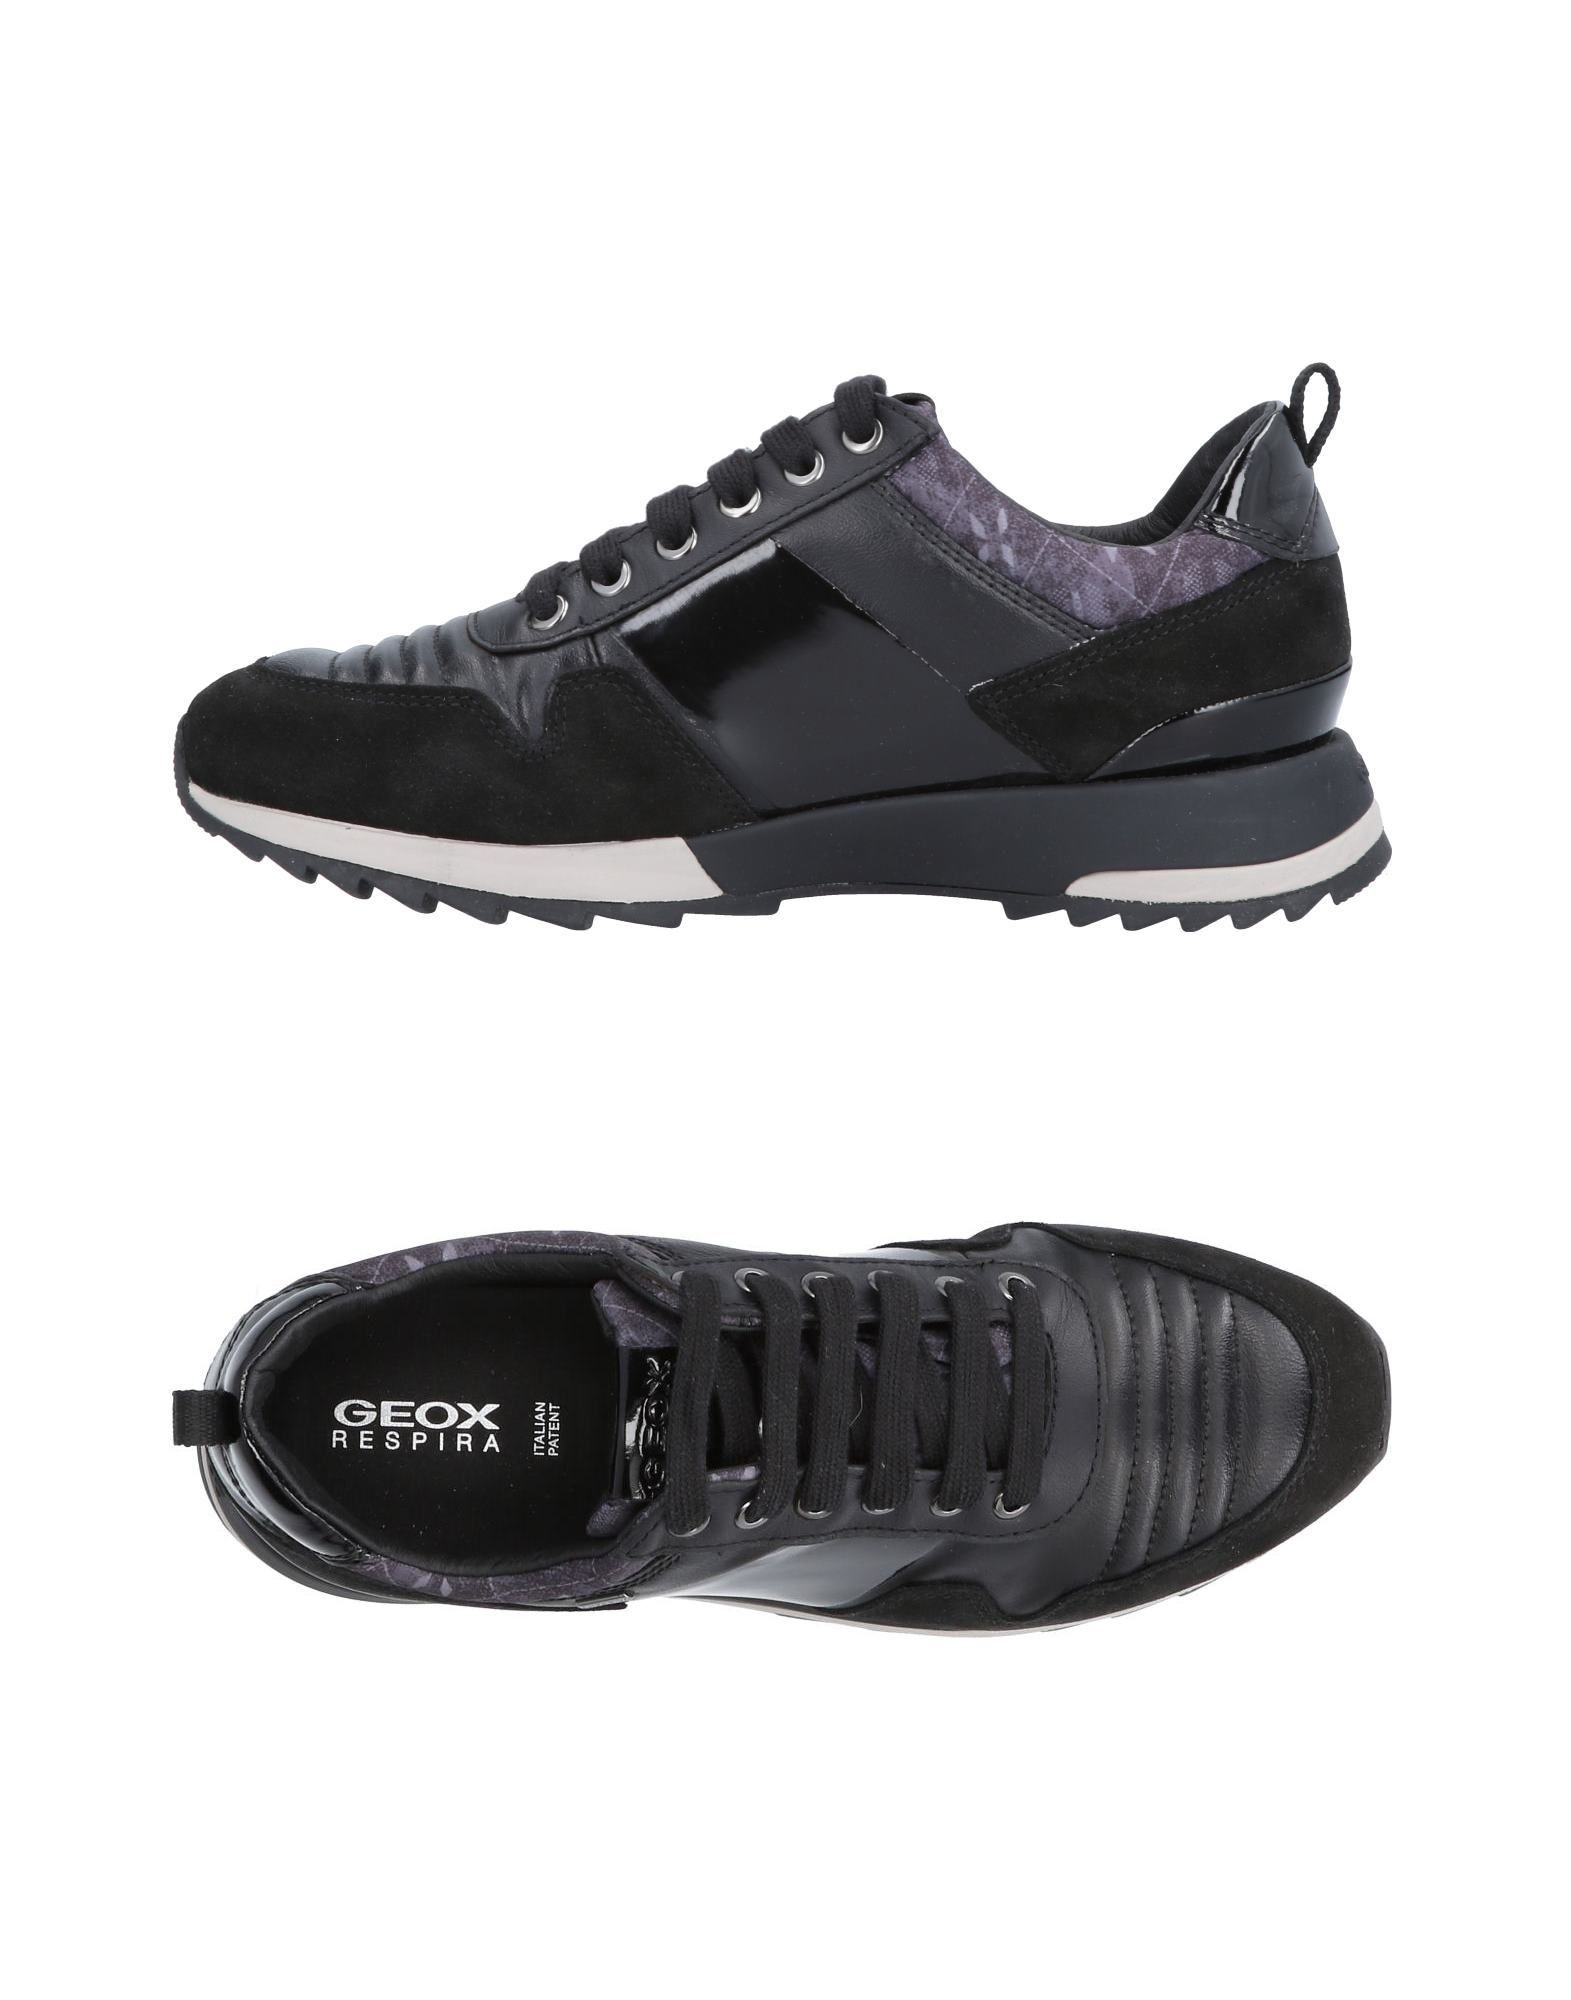 Moda Sneakers Geox Donna - 11314628VN